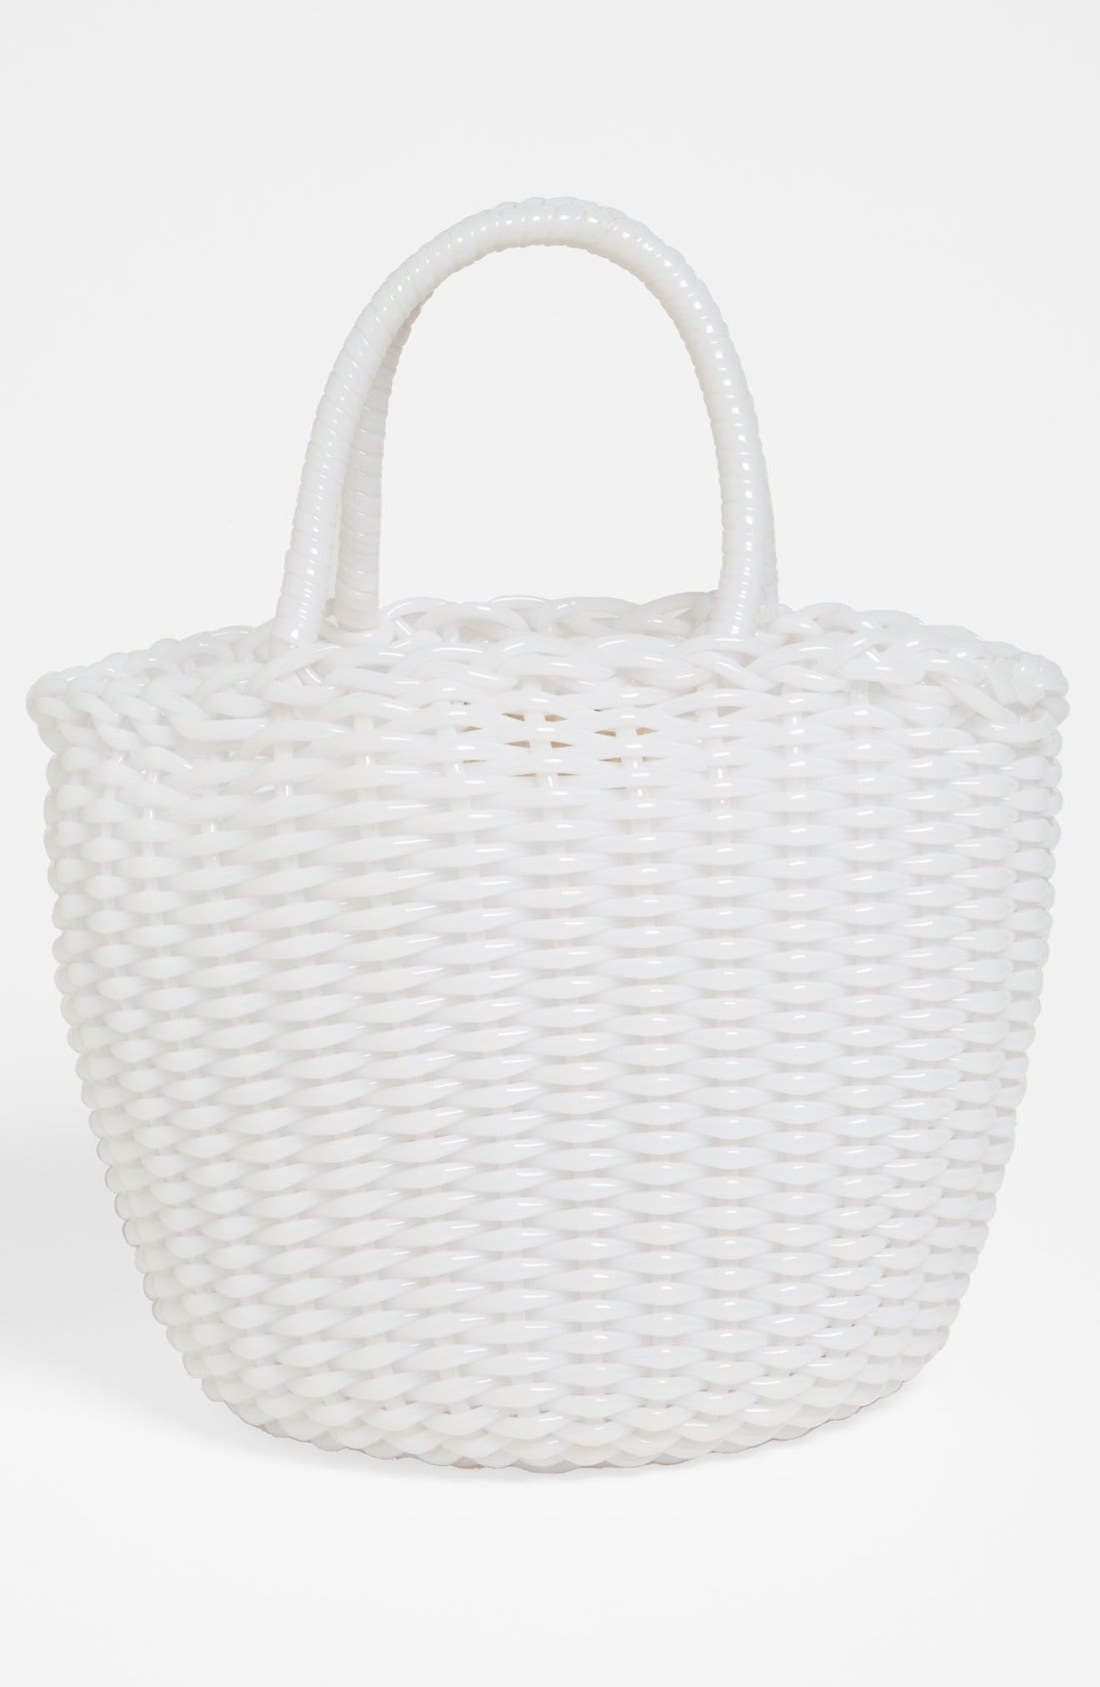 KATE SPADE NEW YORK,                             'beach club - beth' tote,                             Alternate thumbnail 3, color,                             100